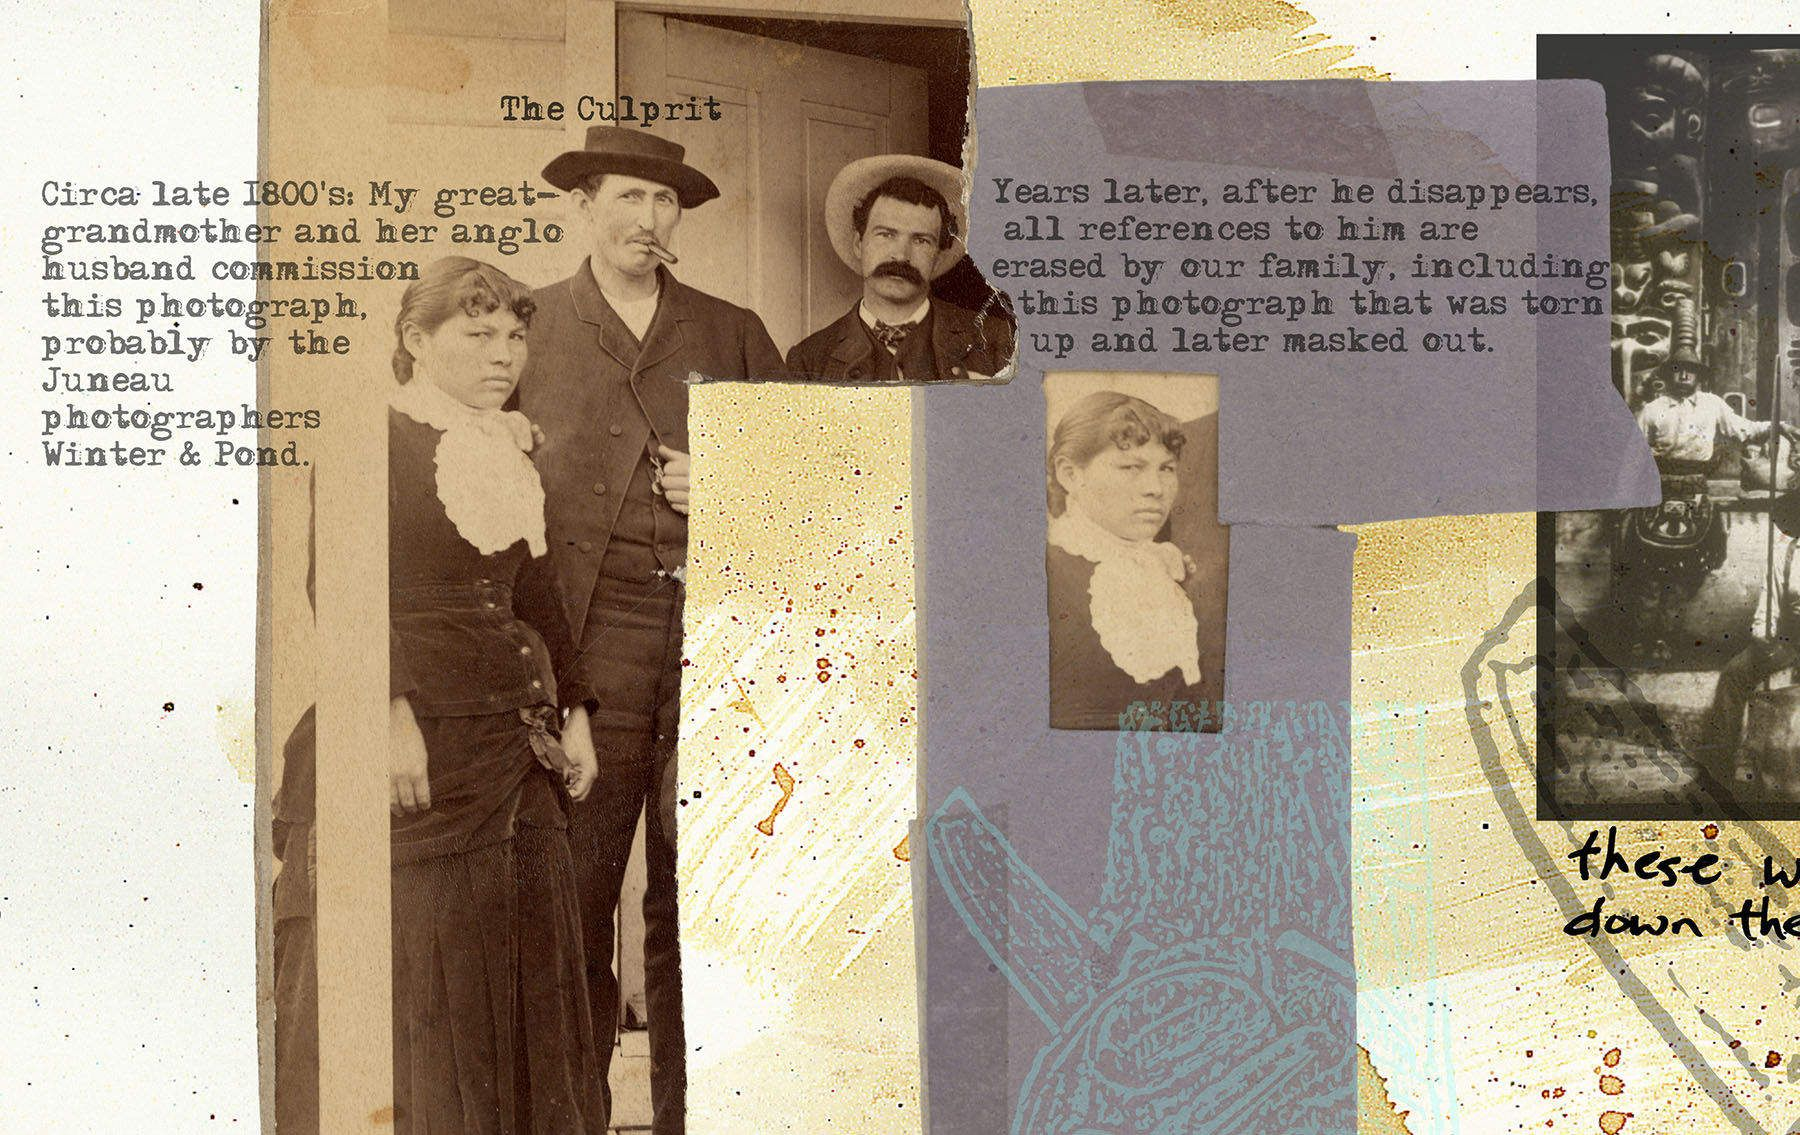 GREAT GRANDPARENTS, digital print detail